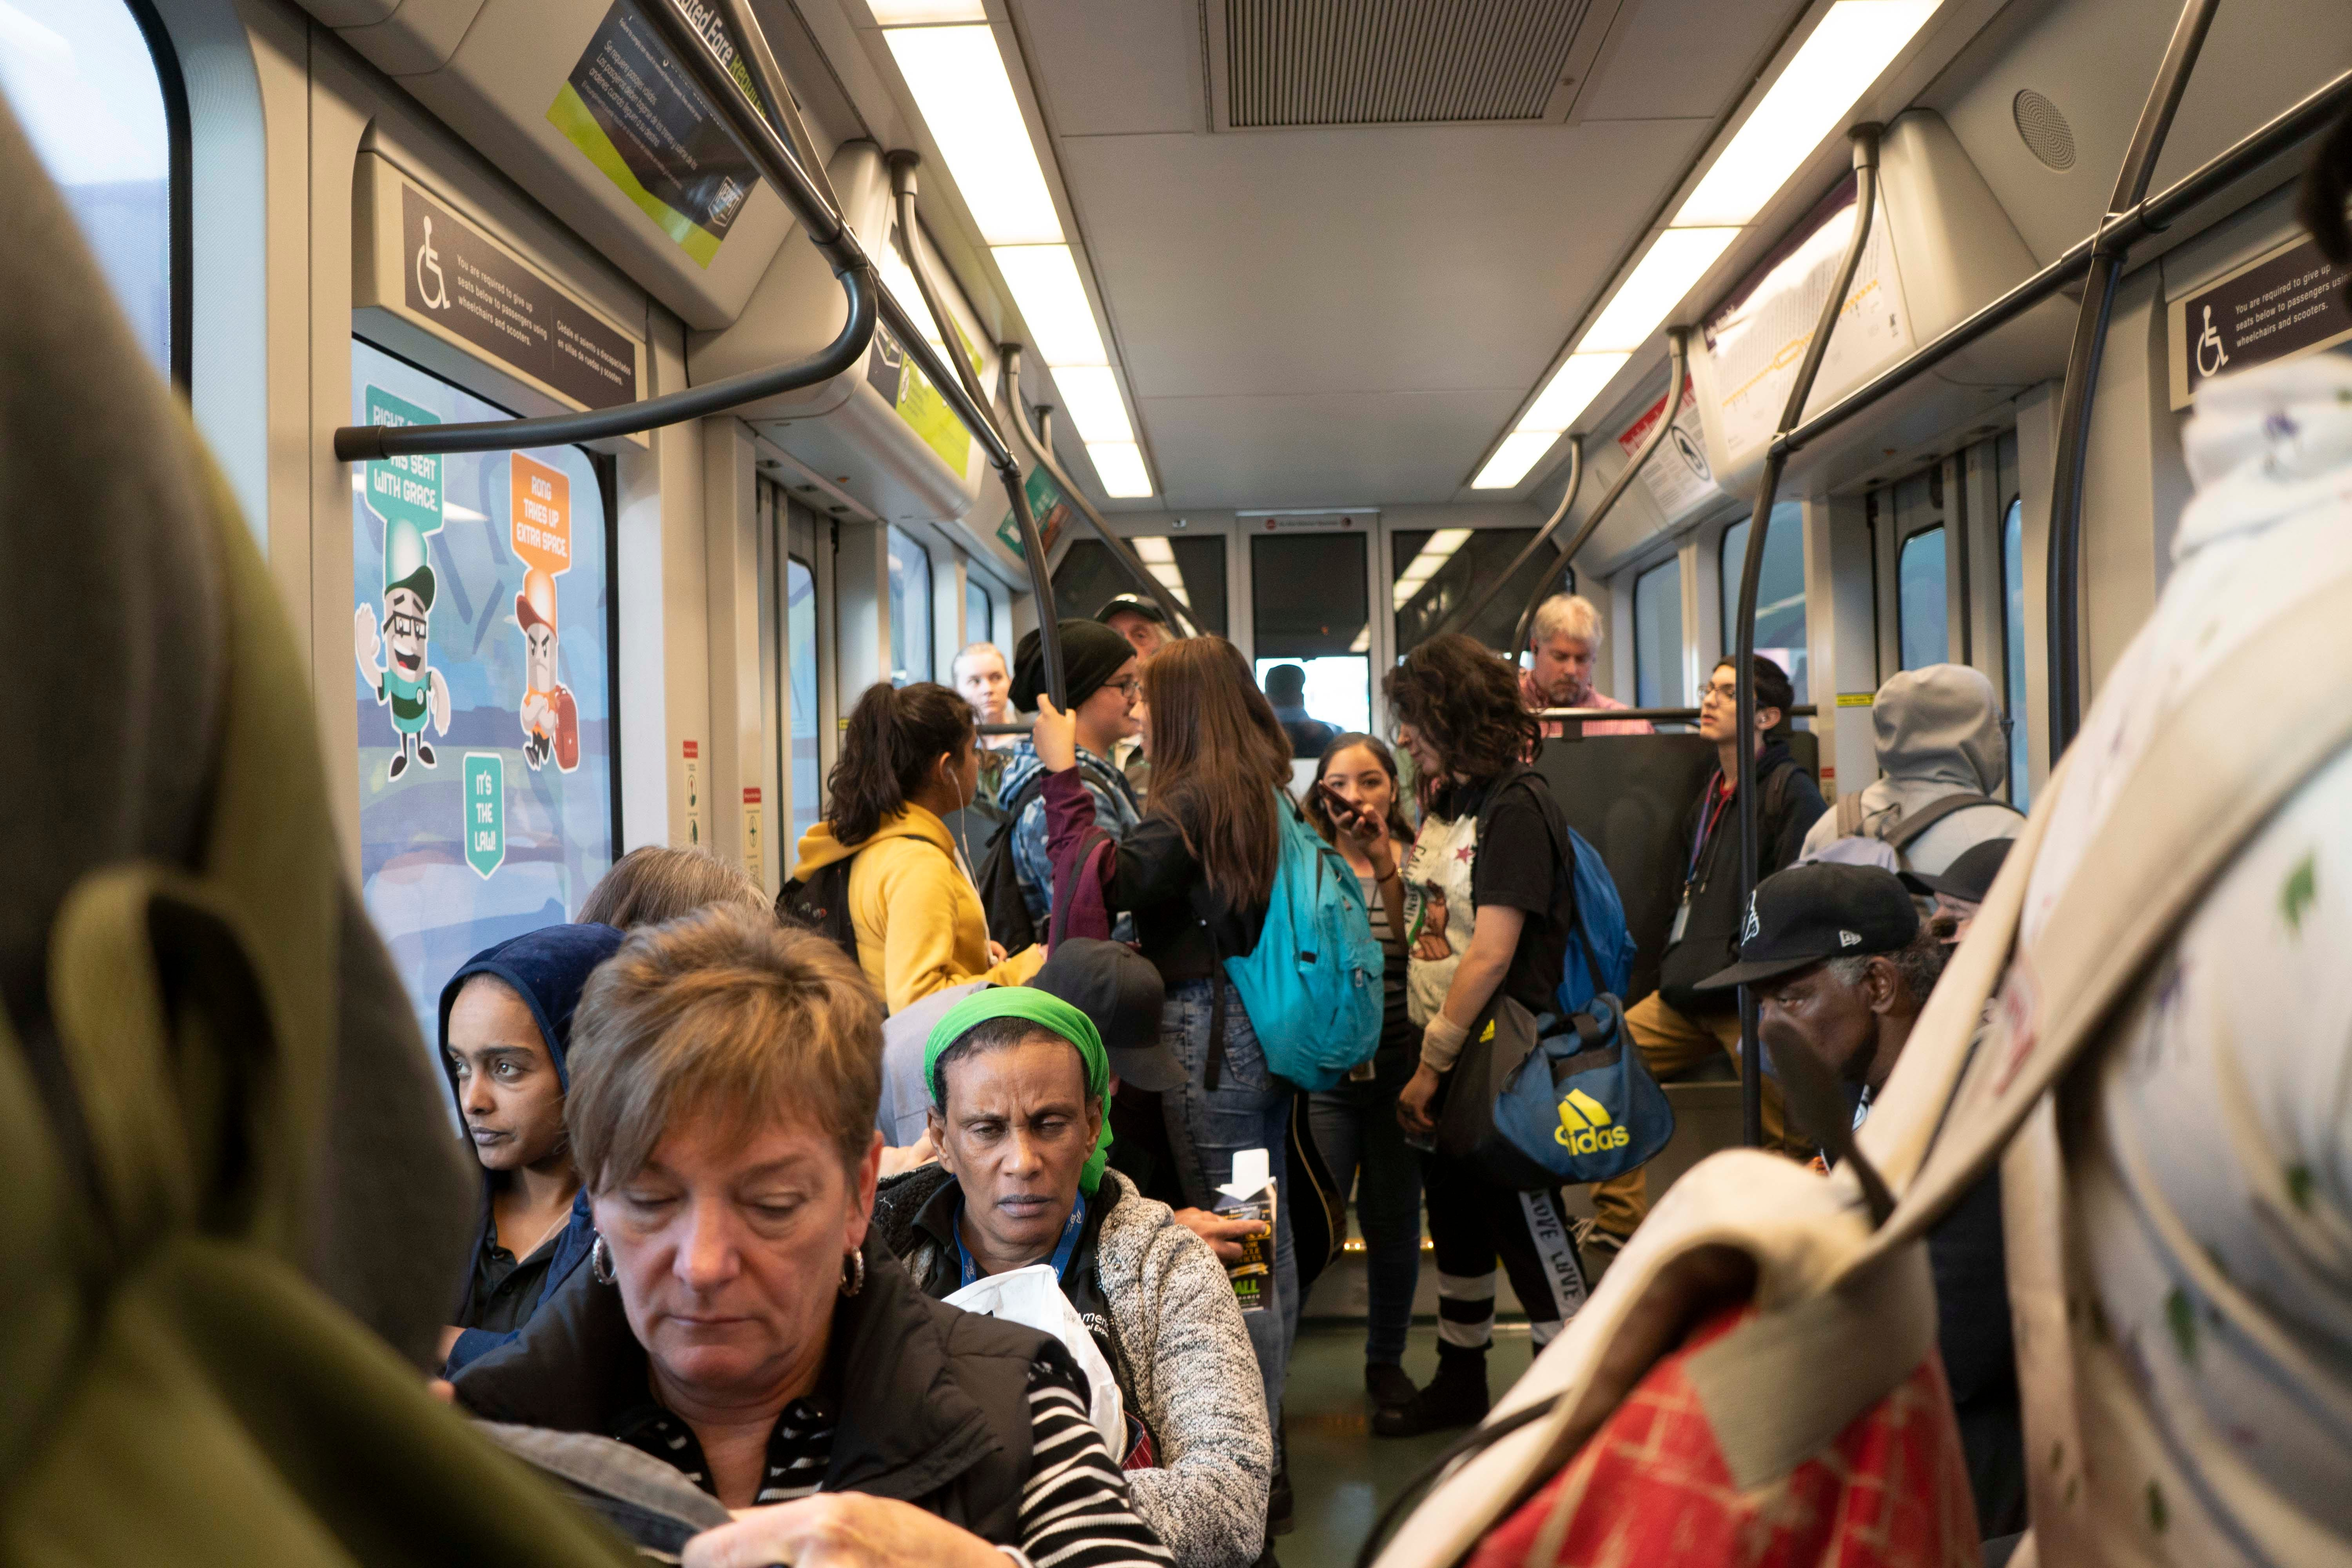 The Valley Metro rail system has anaverage weekday ridership of about50,000, a number Valley Metro didn't expect to reach until 2020. But in the past year, light-rail ridership slipped by about 725,000 riders.